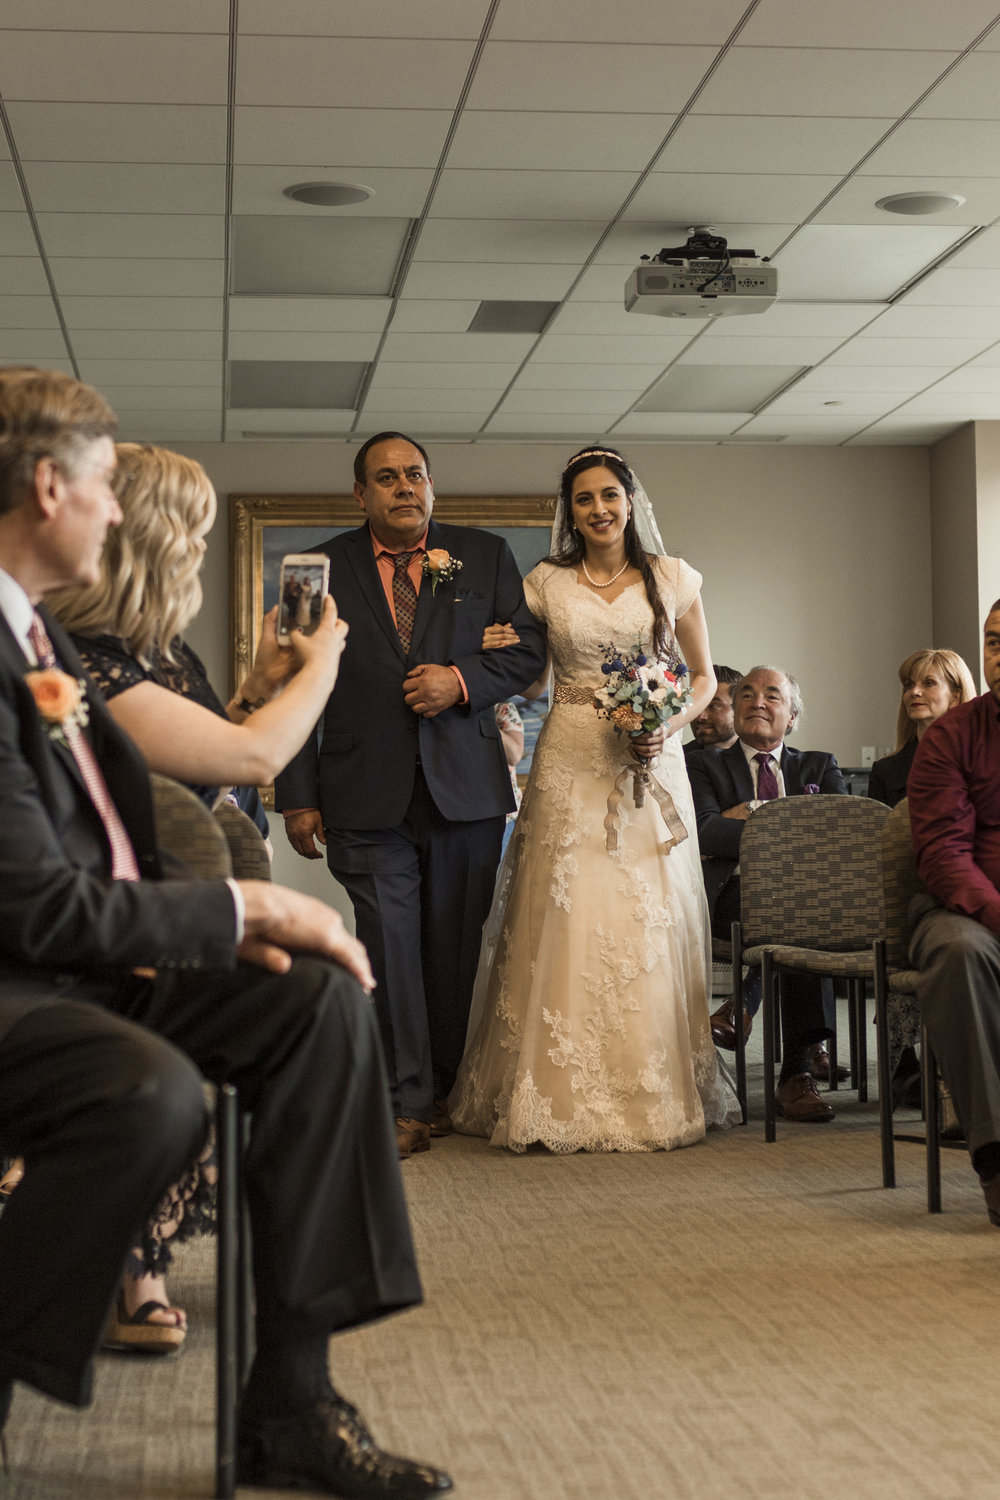 Ring Ceremony in the Zions Bank Founders Room by Bri Bergman Photography01.JPG